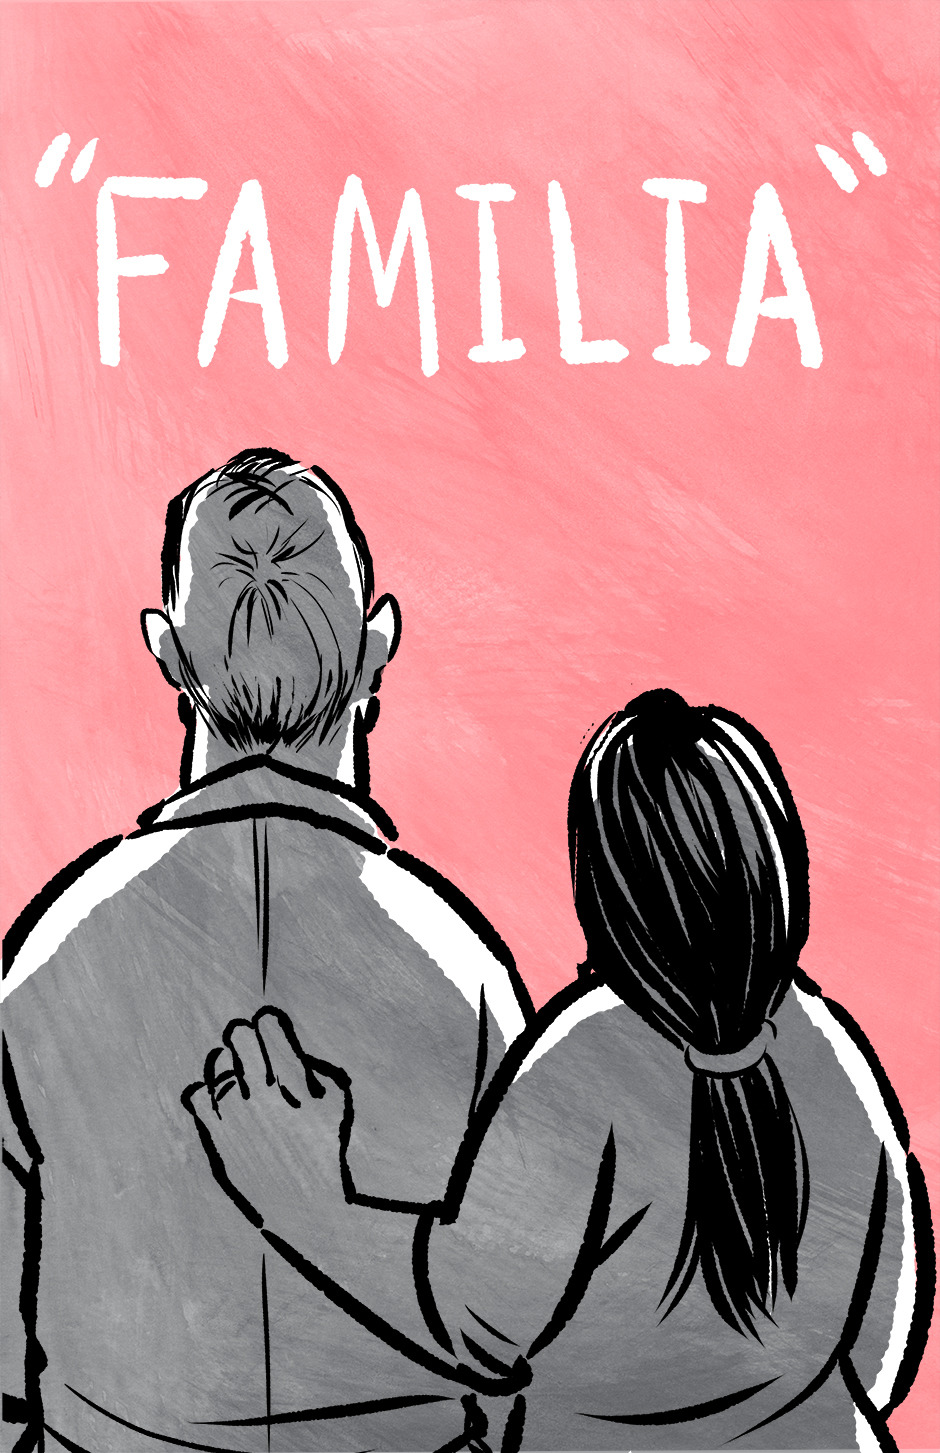 Chapter 6: Familia